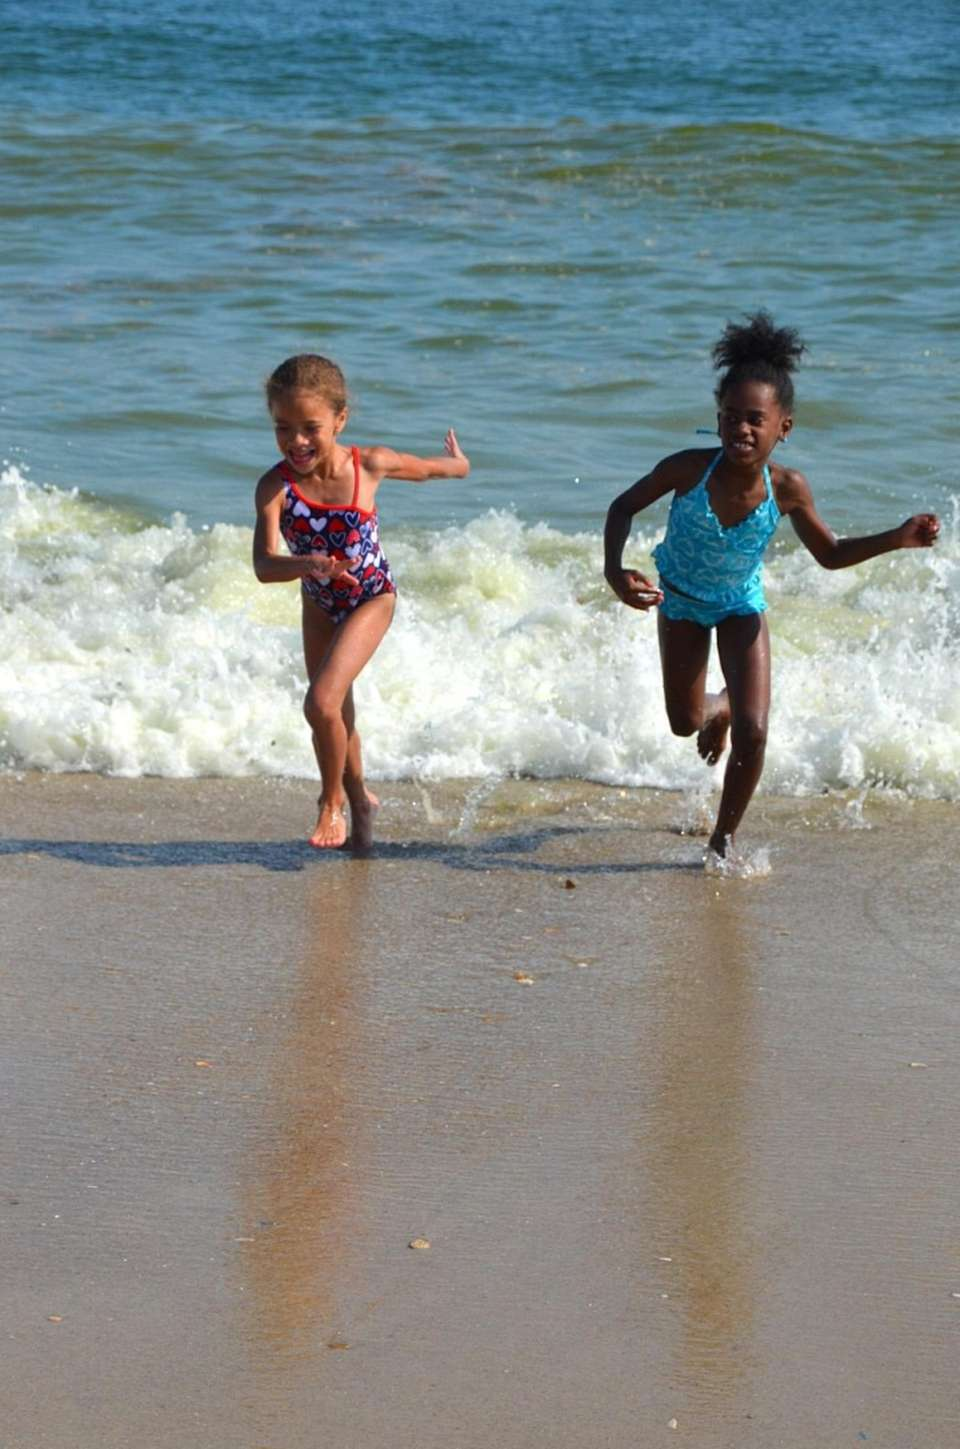 Eryn and Allie running from the wave!